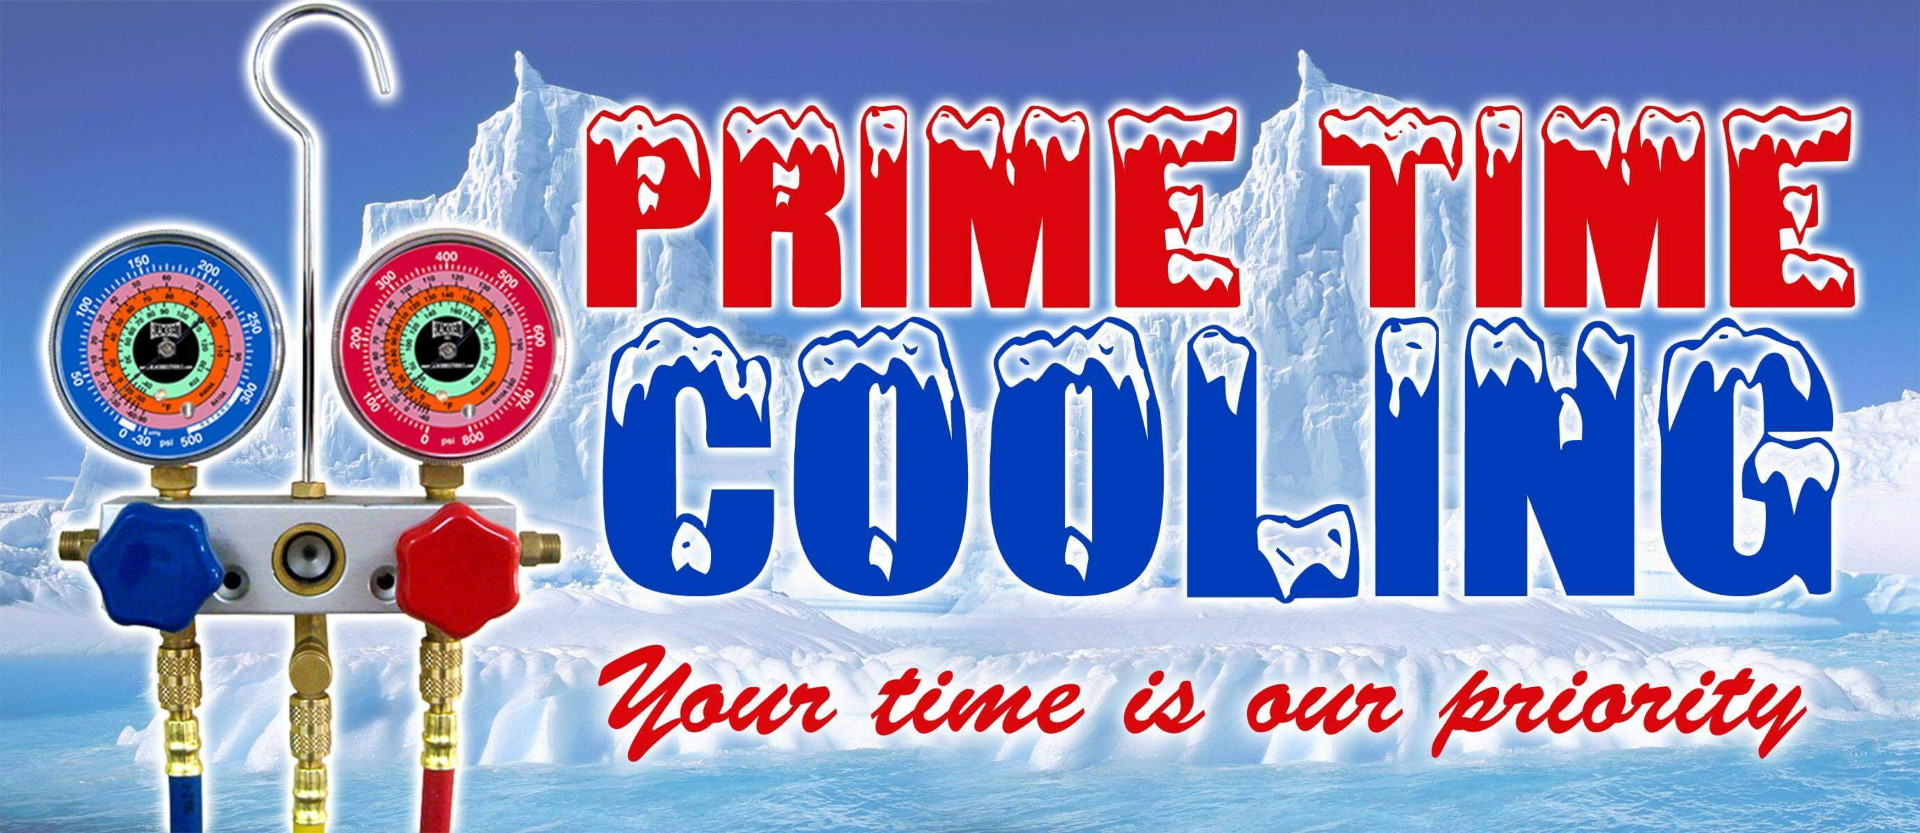 Prime Time Cooling - Air Conditioning Contractor in Pompano Beach FL